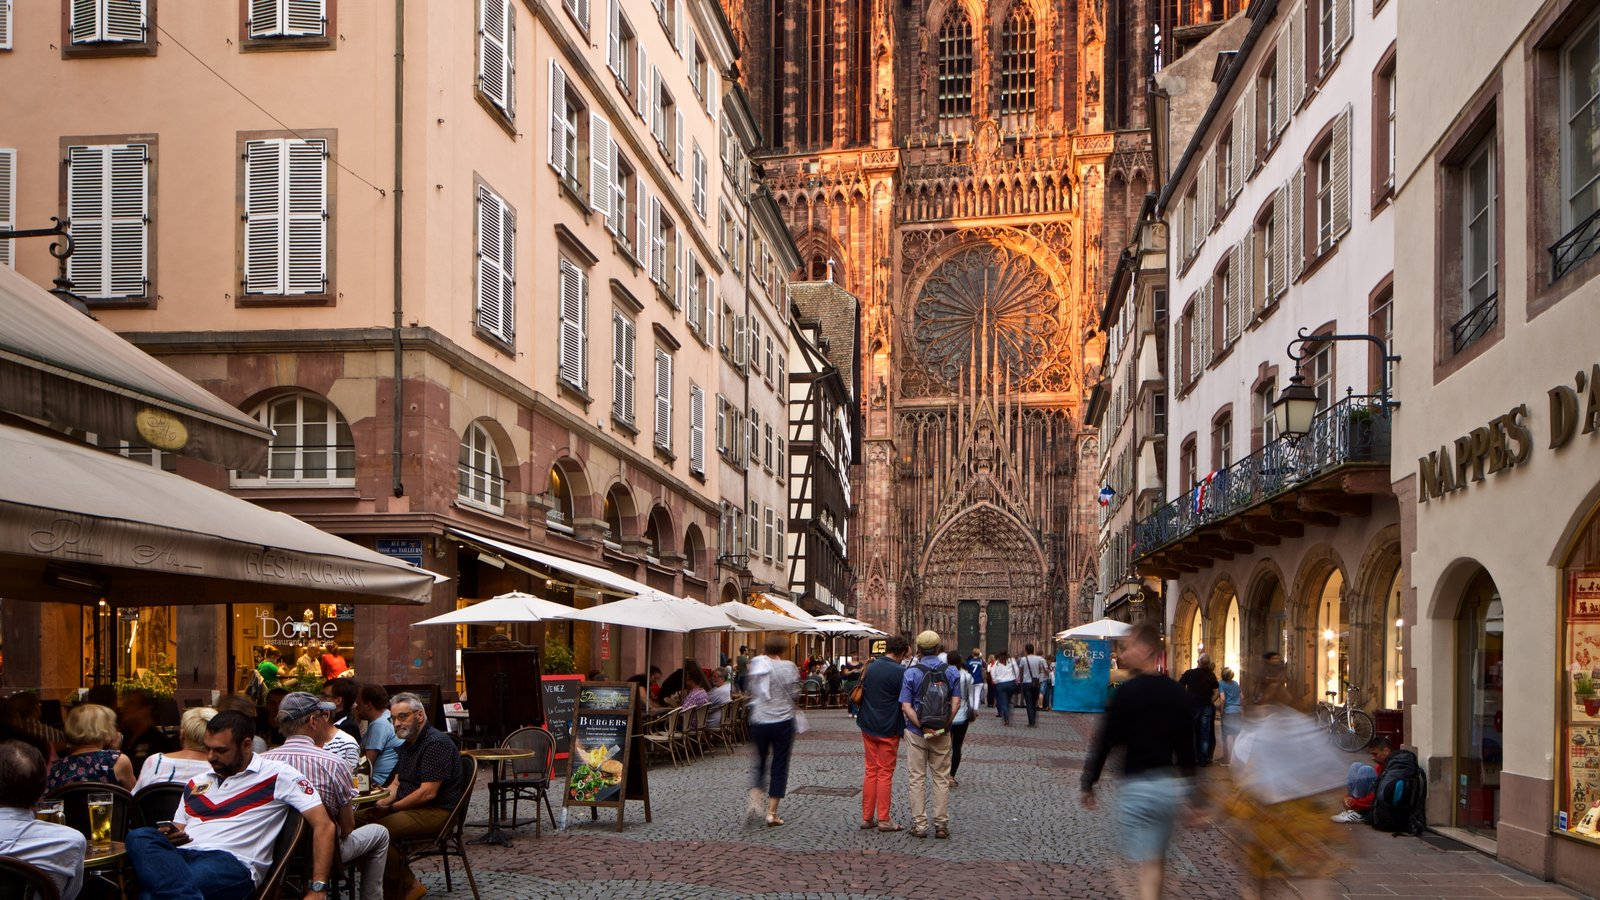 Our Lady of Strasbourg Cathedral featuring street scenes, a church or cathedral and heritage architecture